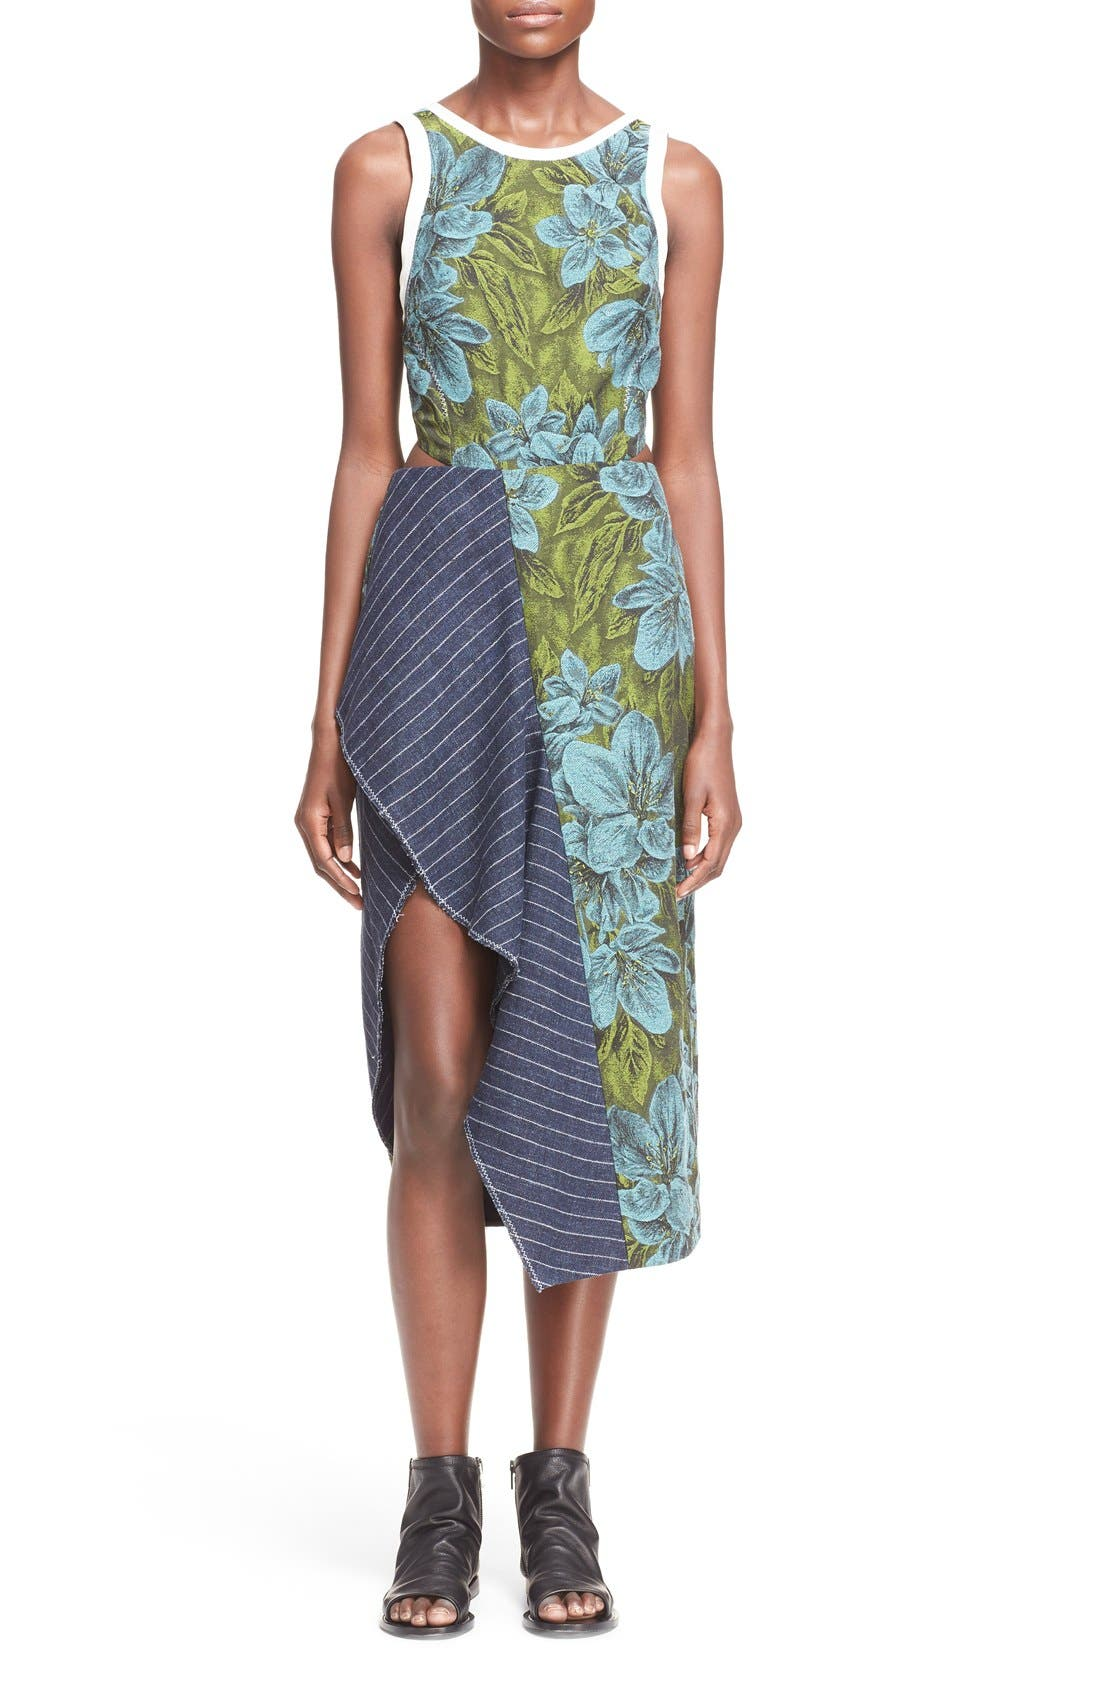 Alternate Image 1 Selected - 3.1 Phillip Lim Side Cutout Ruffle Floral Jacquard Dress